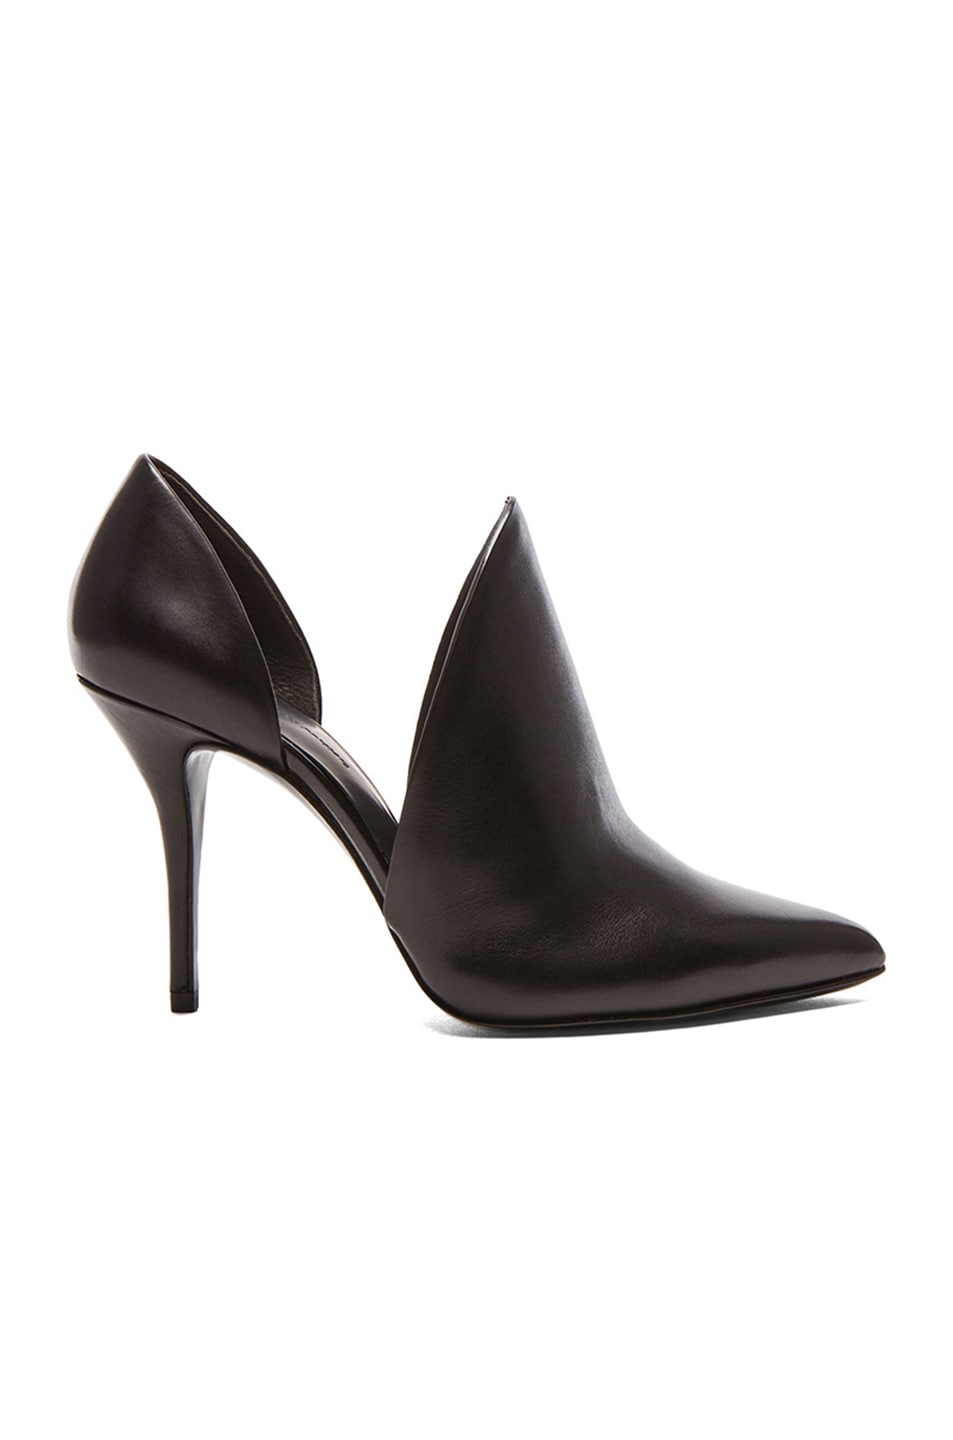 Image 1 of Alexander Wang Leva D'Orsay Leather Pumps in Black